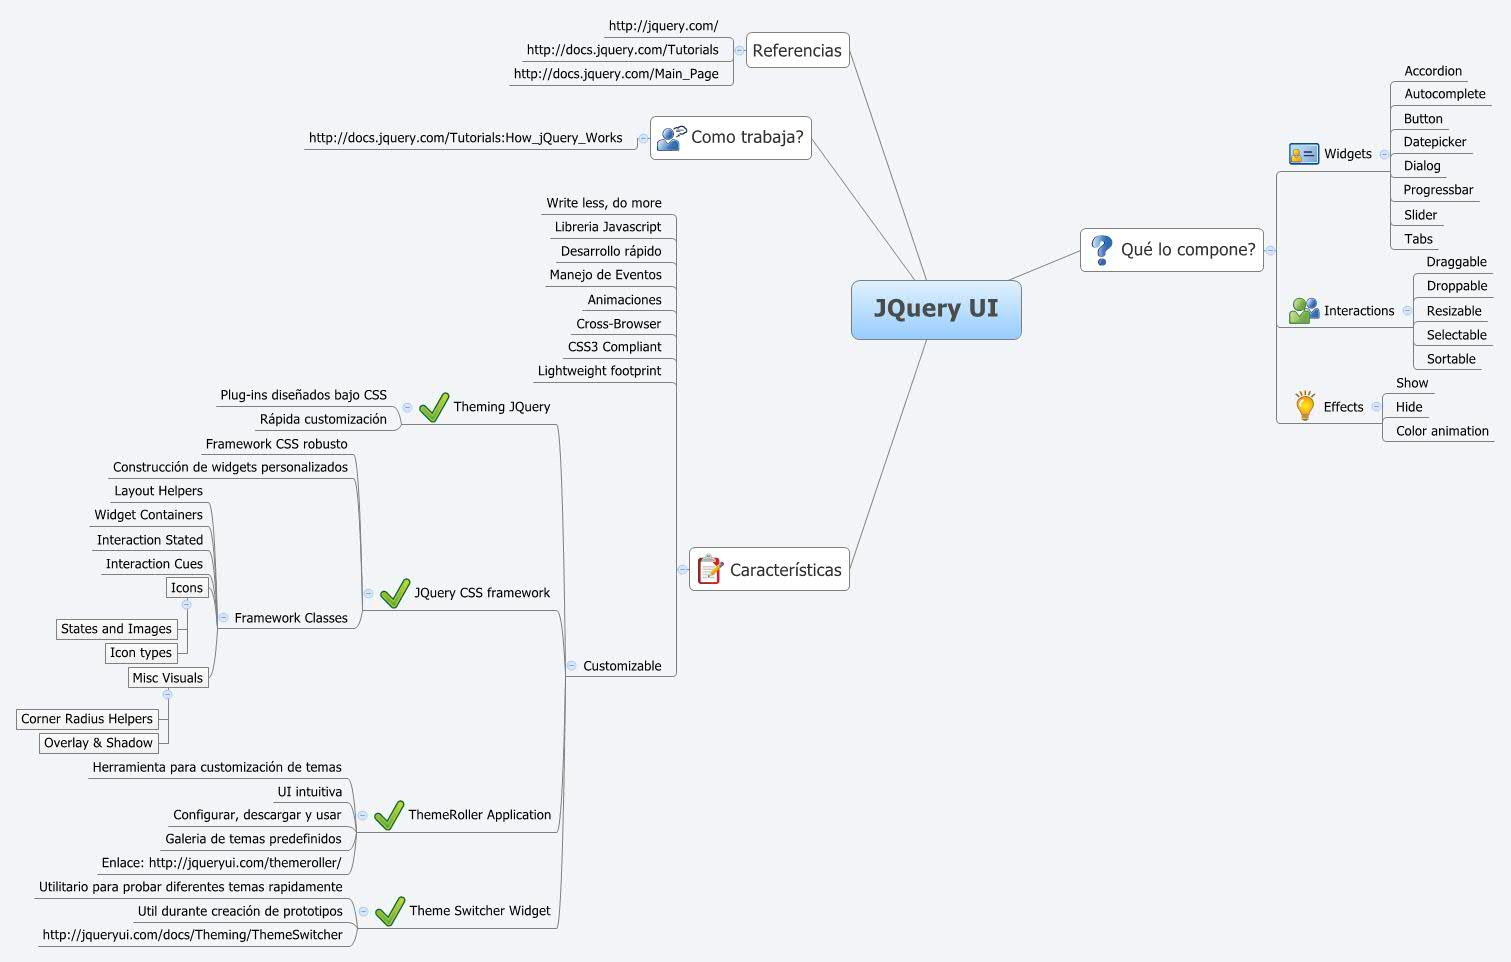 JQuery UI - XMind - Mind Mapping Software